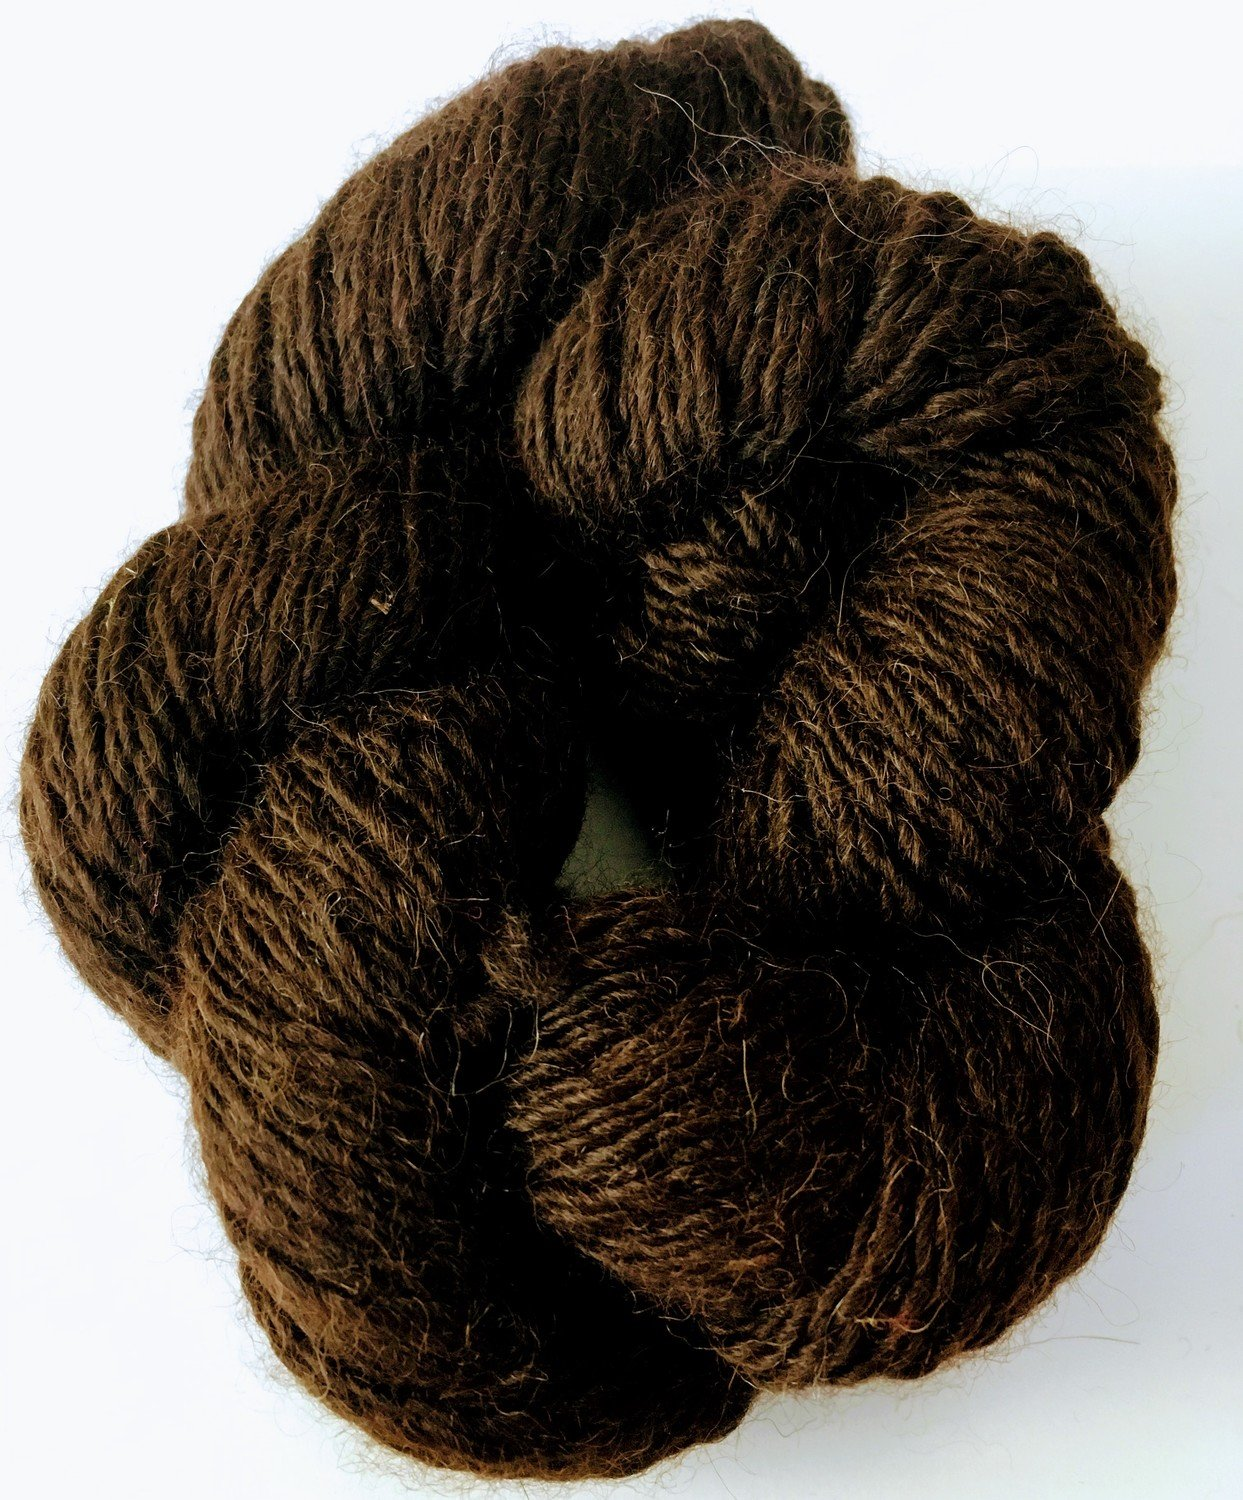 Breezy Hill Cottage-Milled, Hand-Dyed Yarn - Chocolate